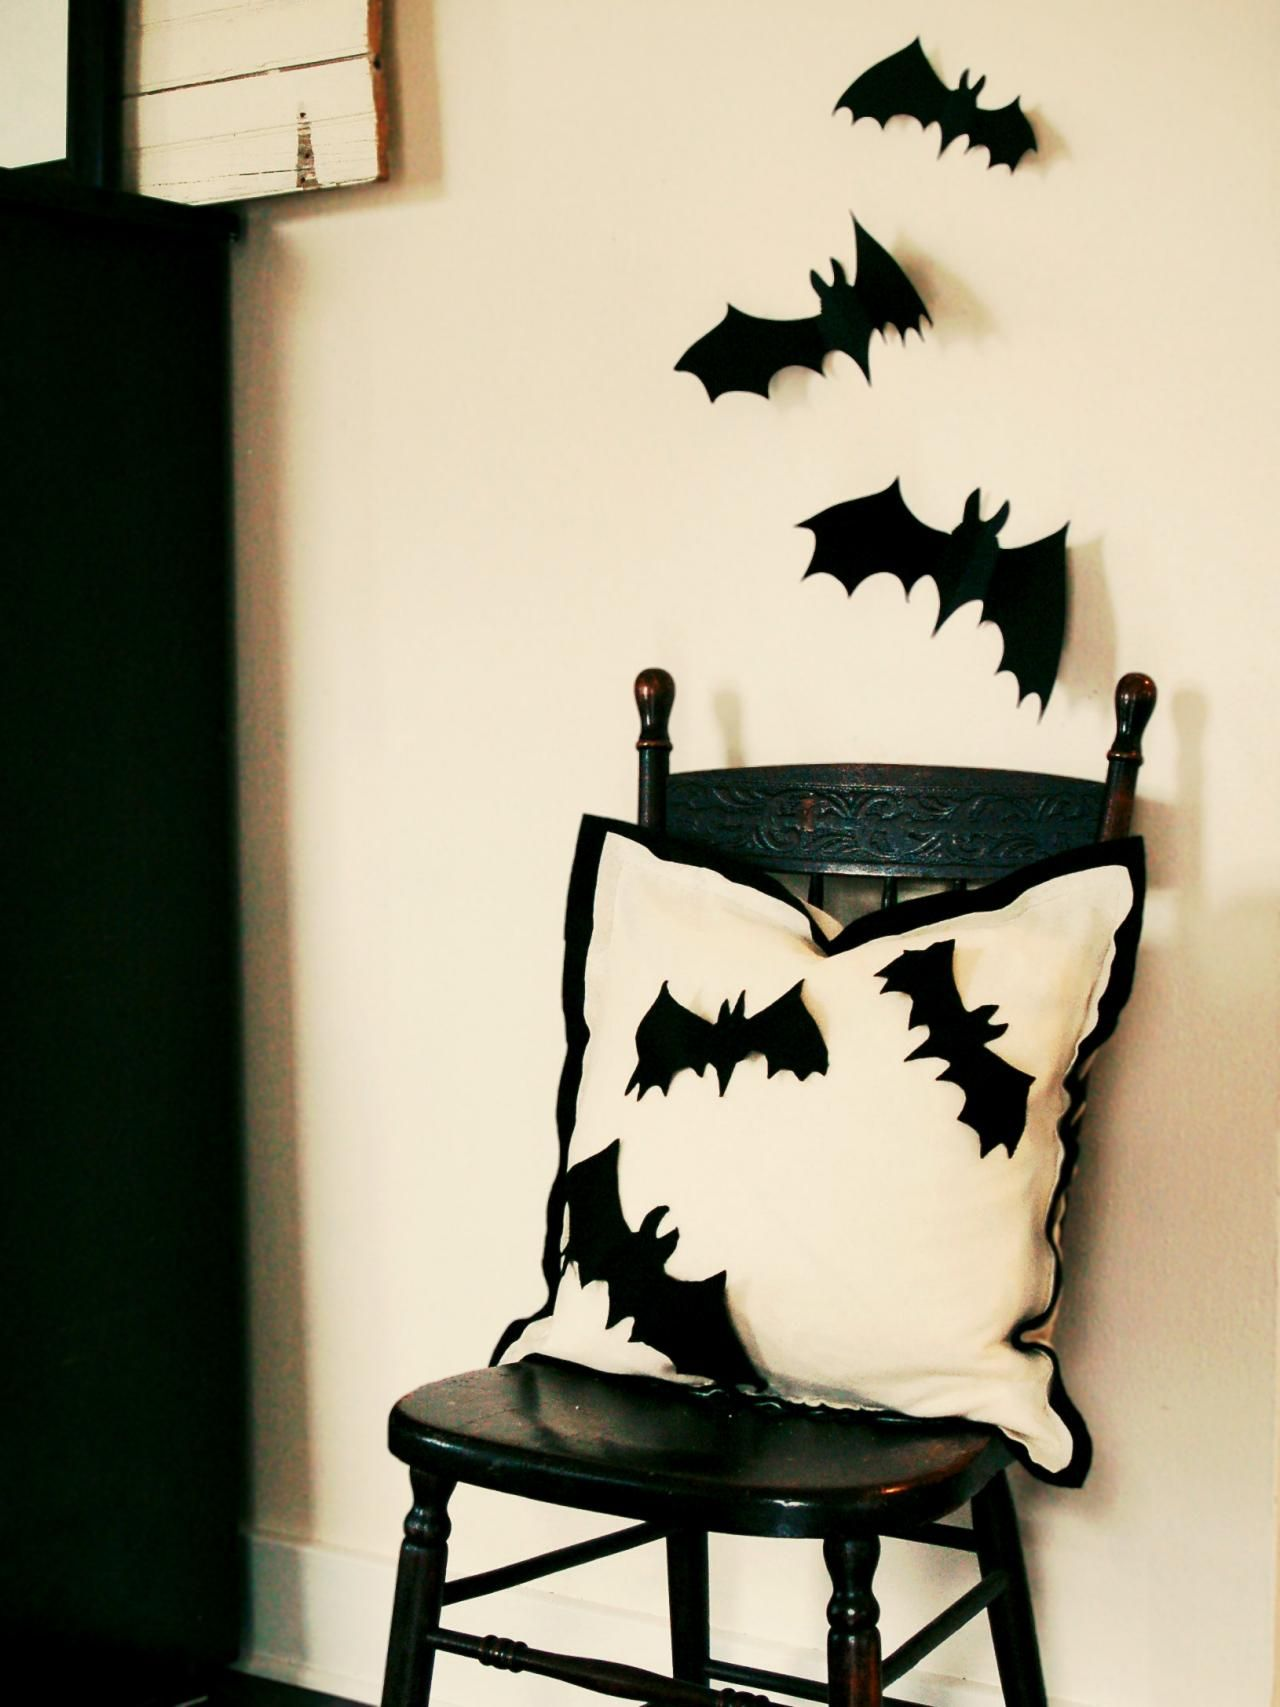 65+ DIY Halloween Decorations  Decorating Ideas Pinterest Bat - do it yourself halloween decorations